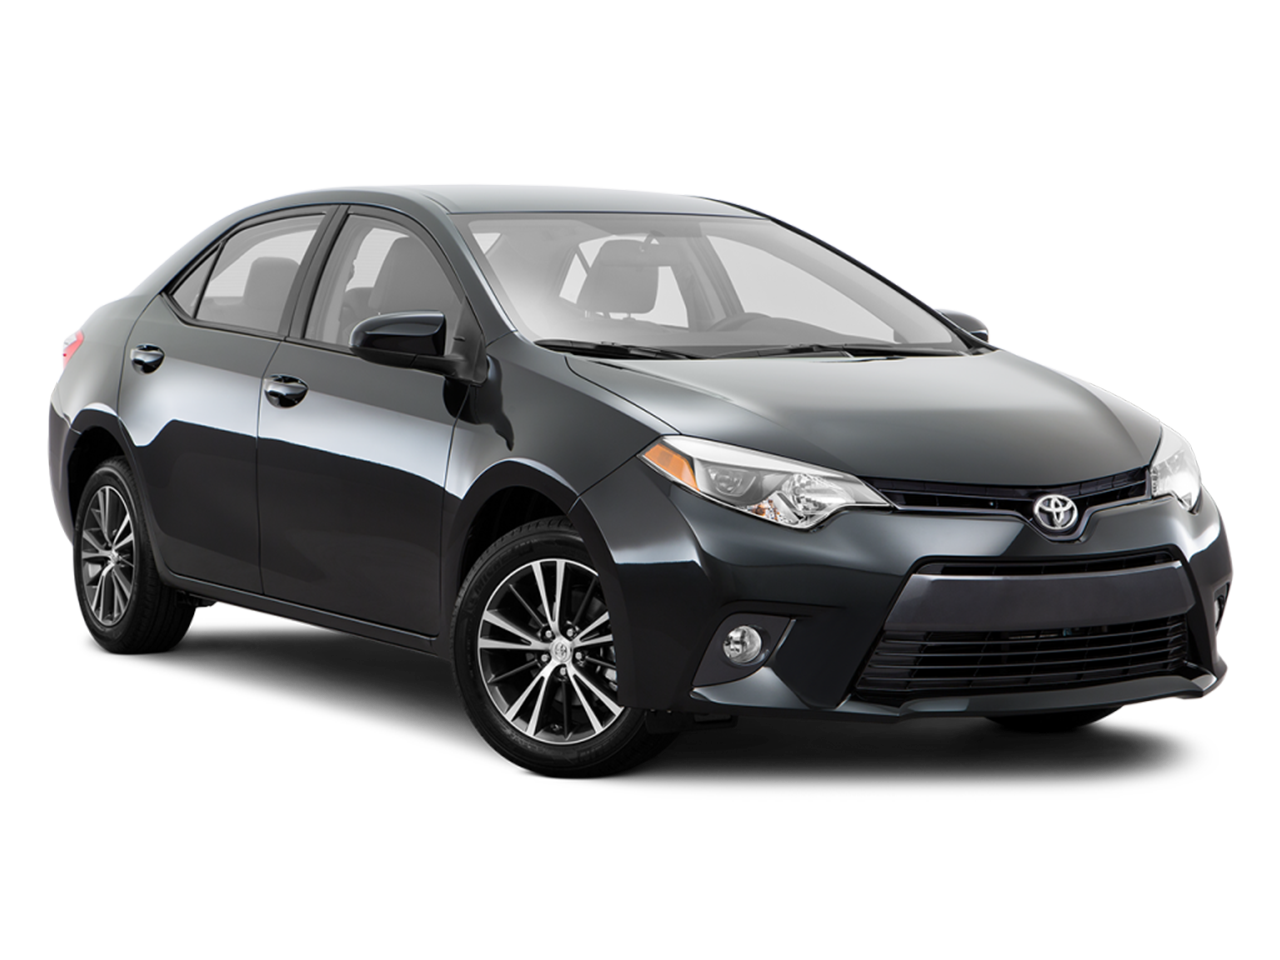 compare the 2016 toyota corolla vs 2016 honda civic romano toyota. Black Bedroom Furniture Sets. Home Design Ideas